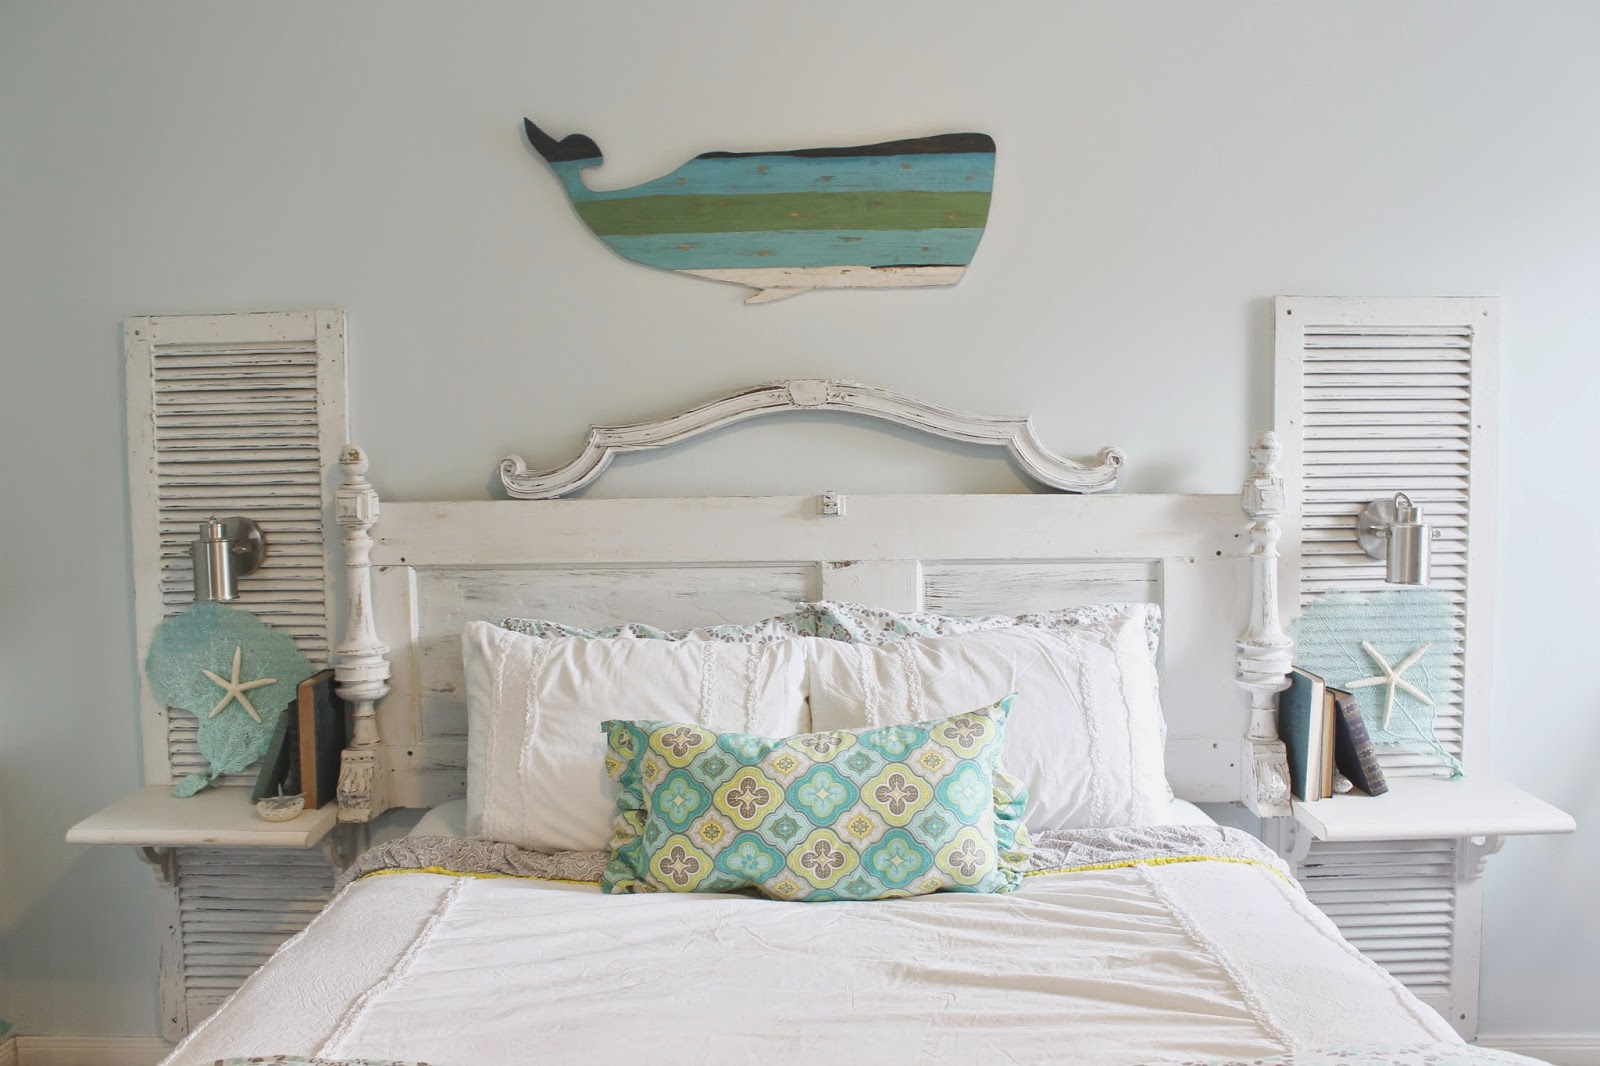 Bed board made from wooden shutters